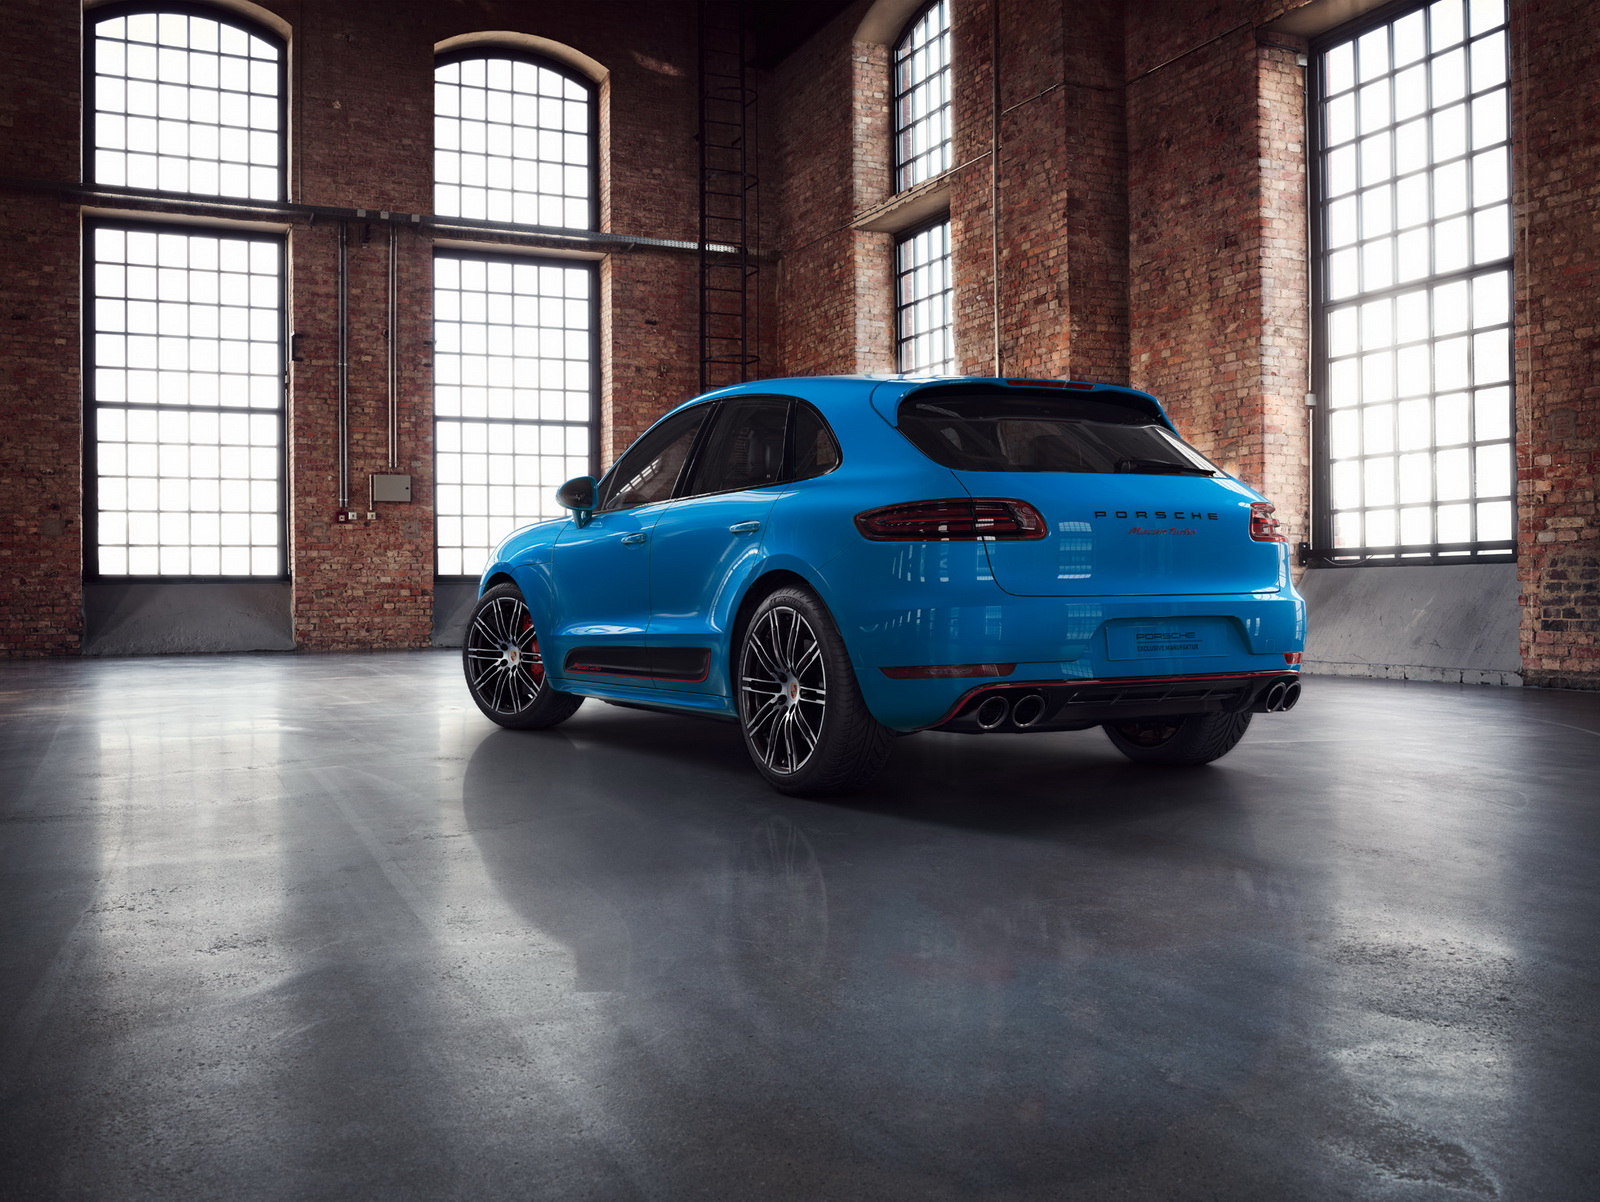 Porsche_Macan_Turbo_Exclusive_Performance_Edition_03